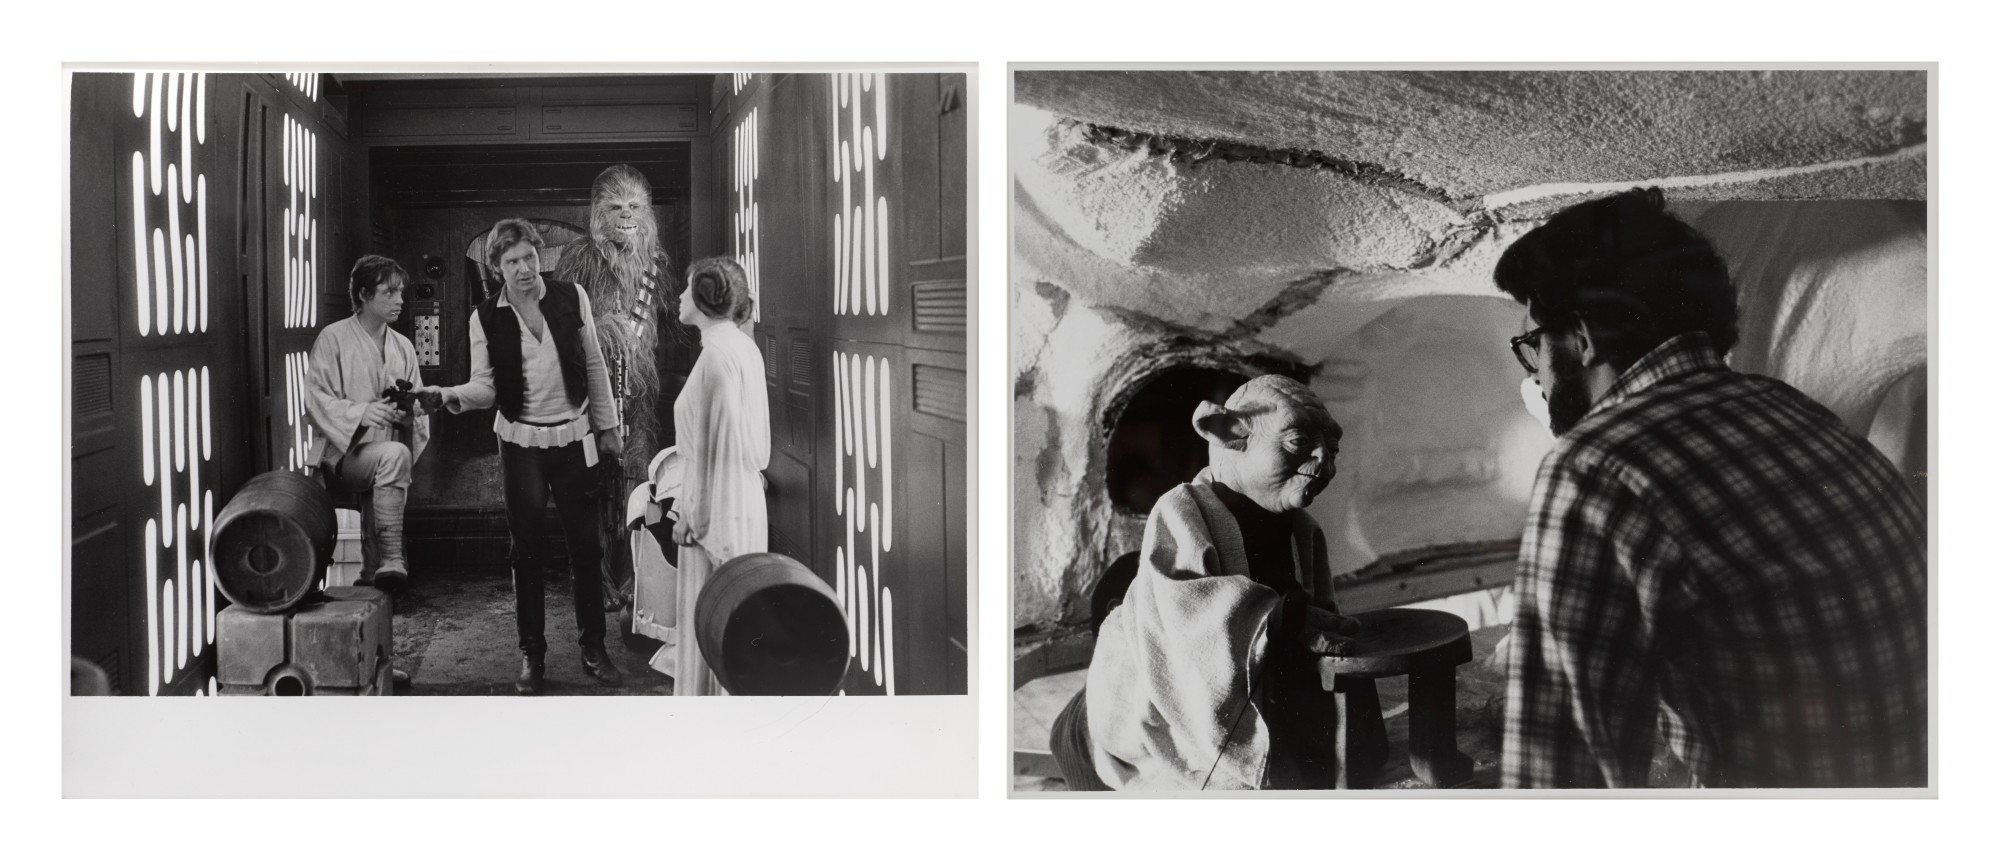 STAR WARS (1977) AND THE EMPIRE STRIKES BACK (1980) ORIGINAL PHOTOGRAPHS, US